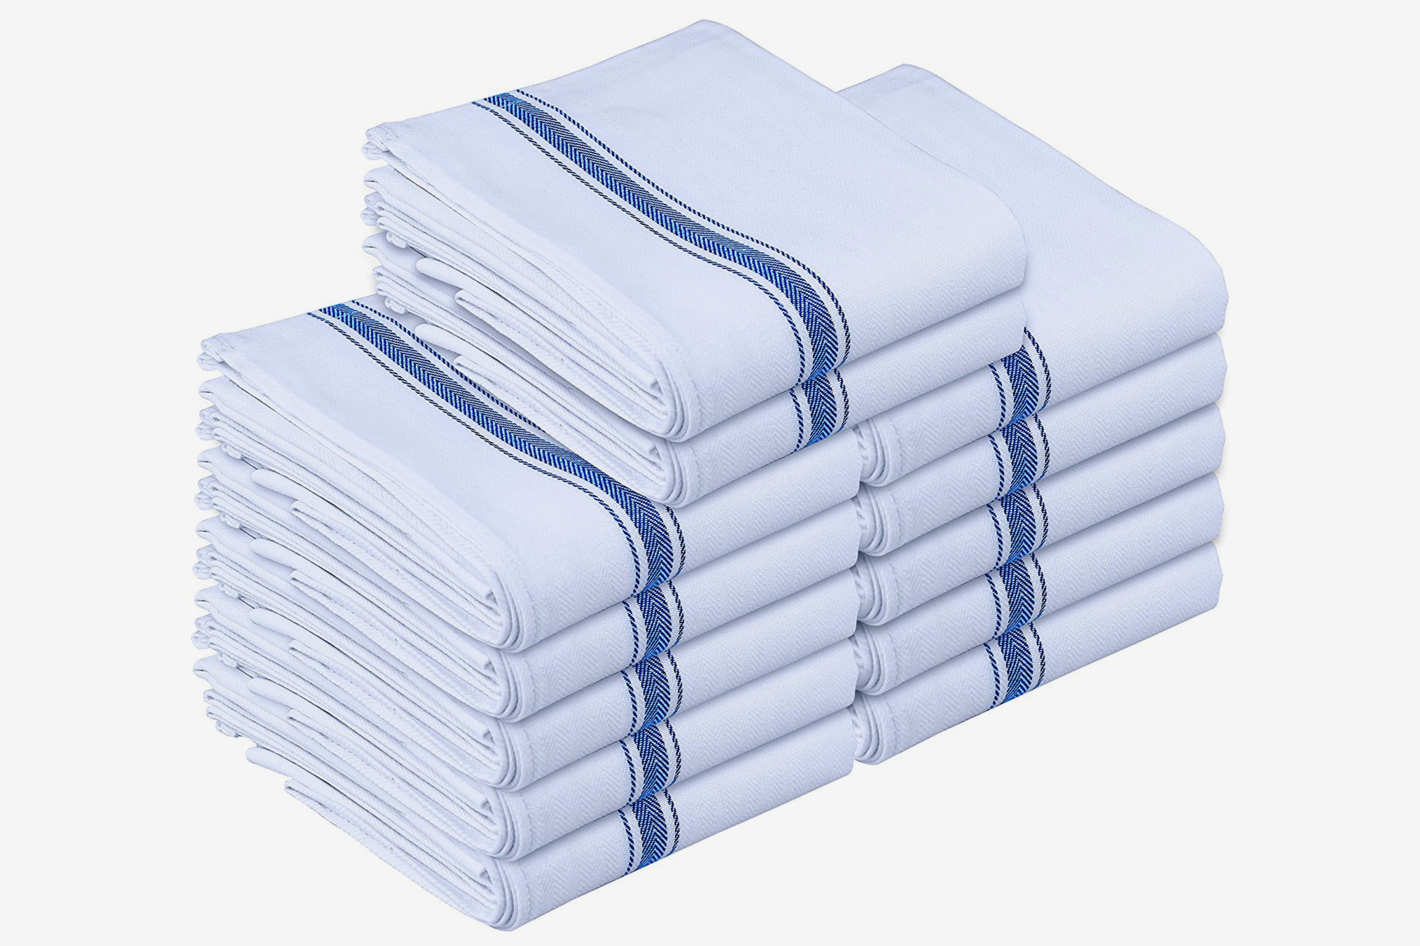 Utopia Towels Kitchen Towels Dish Cloth (12 Pack)